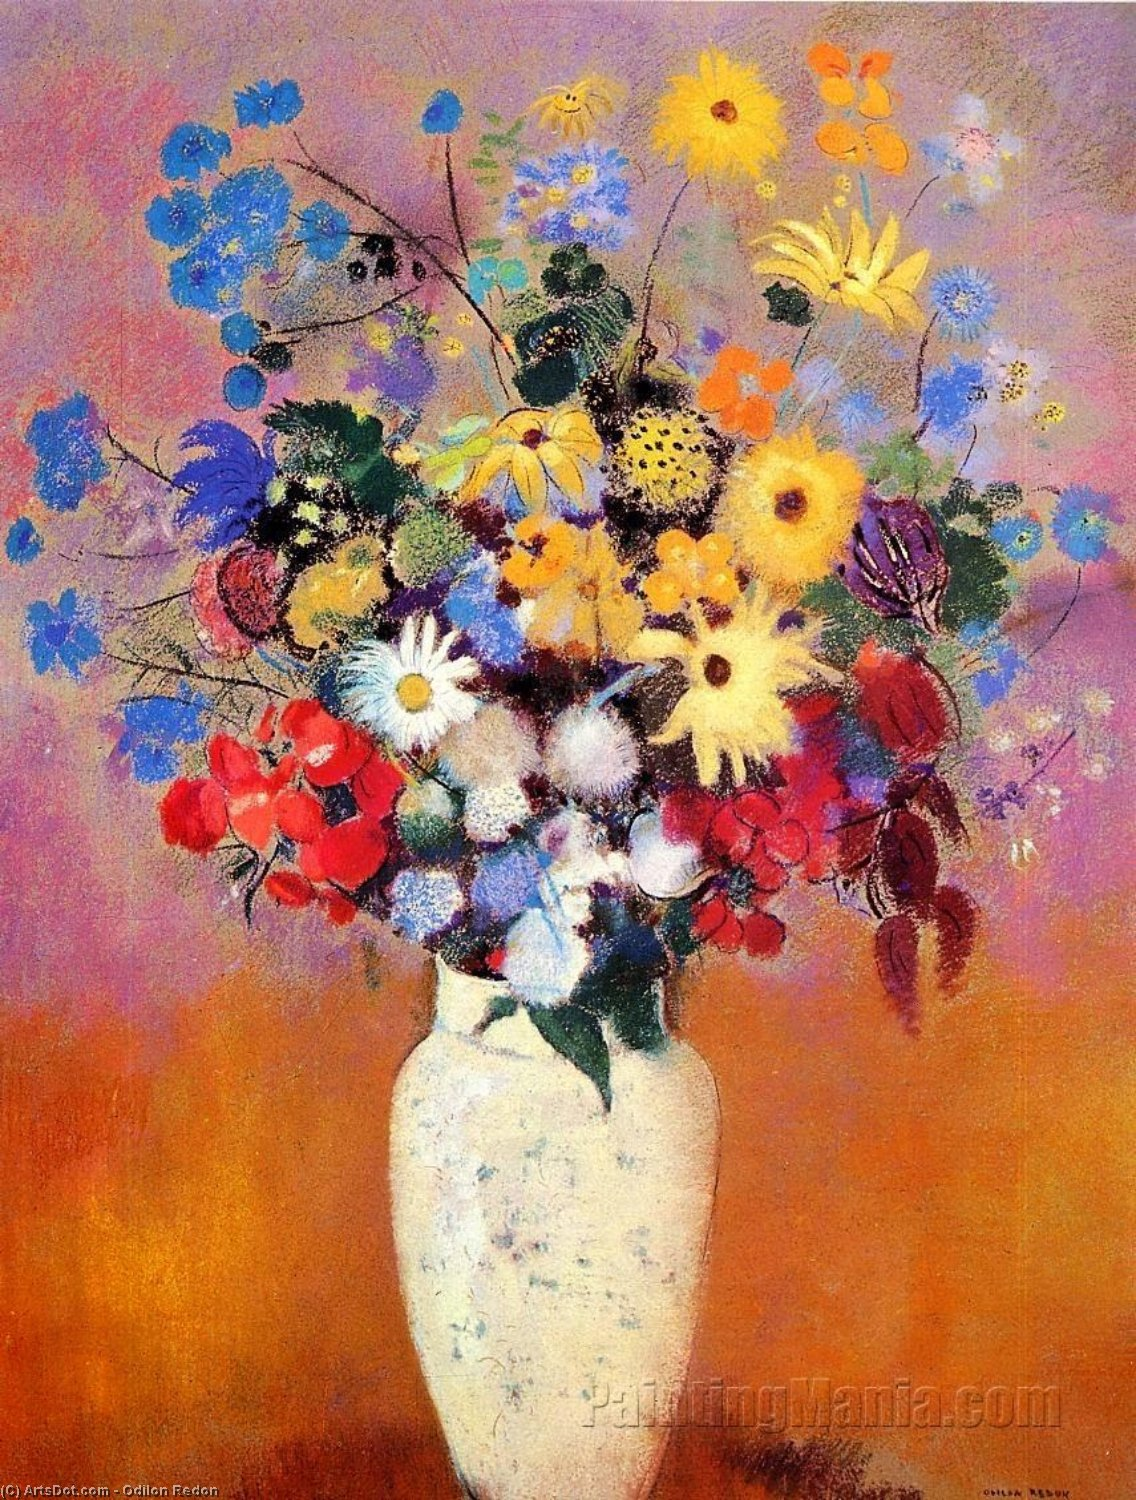 Order Painting Copy : White Vase with Flowers, 1916 by Odilon Redon (1840-1916, France) | ArtsDot.com